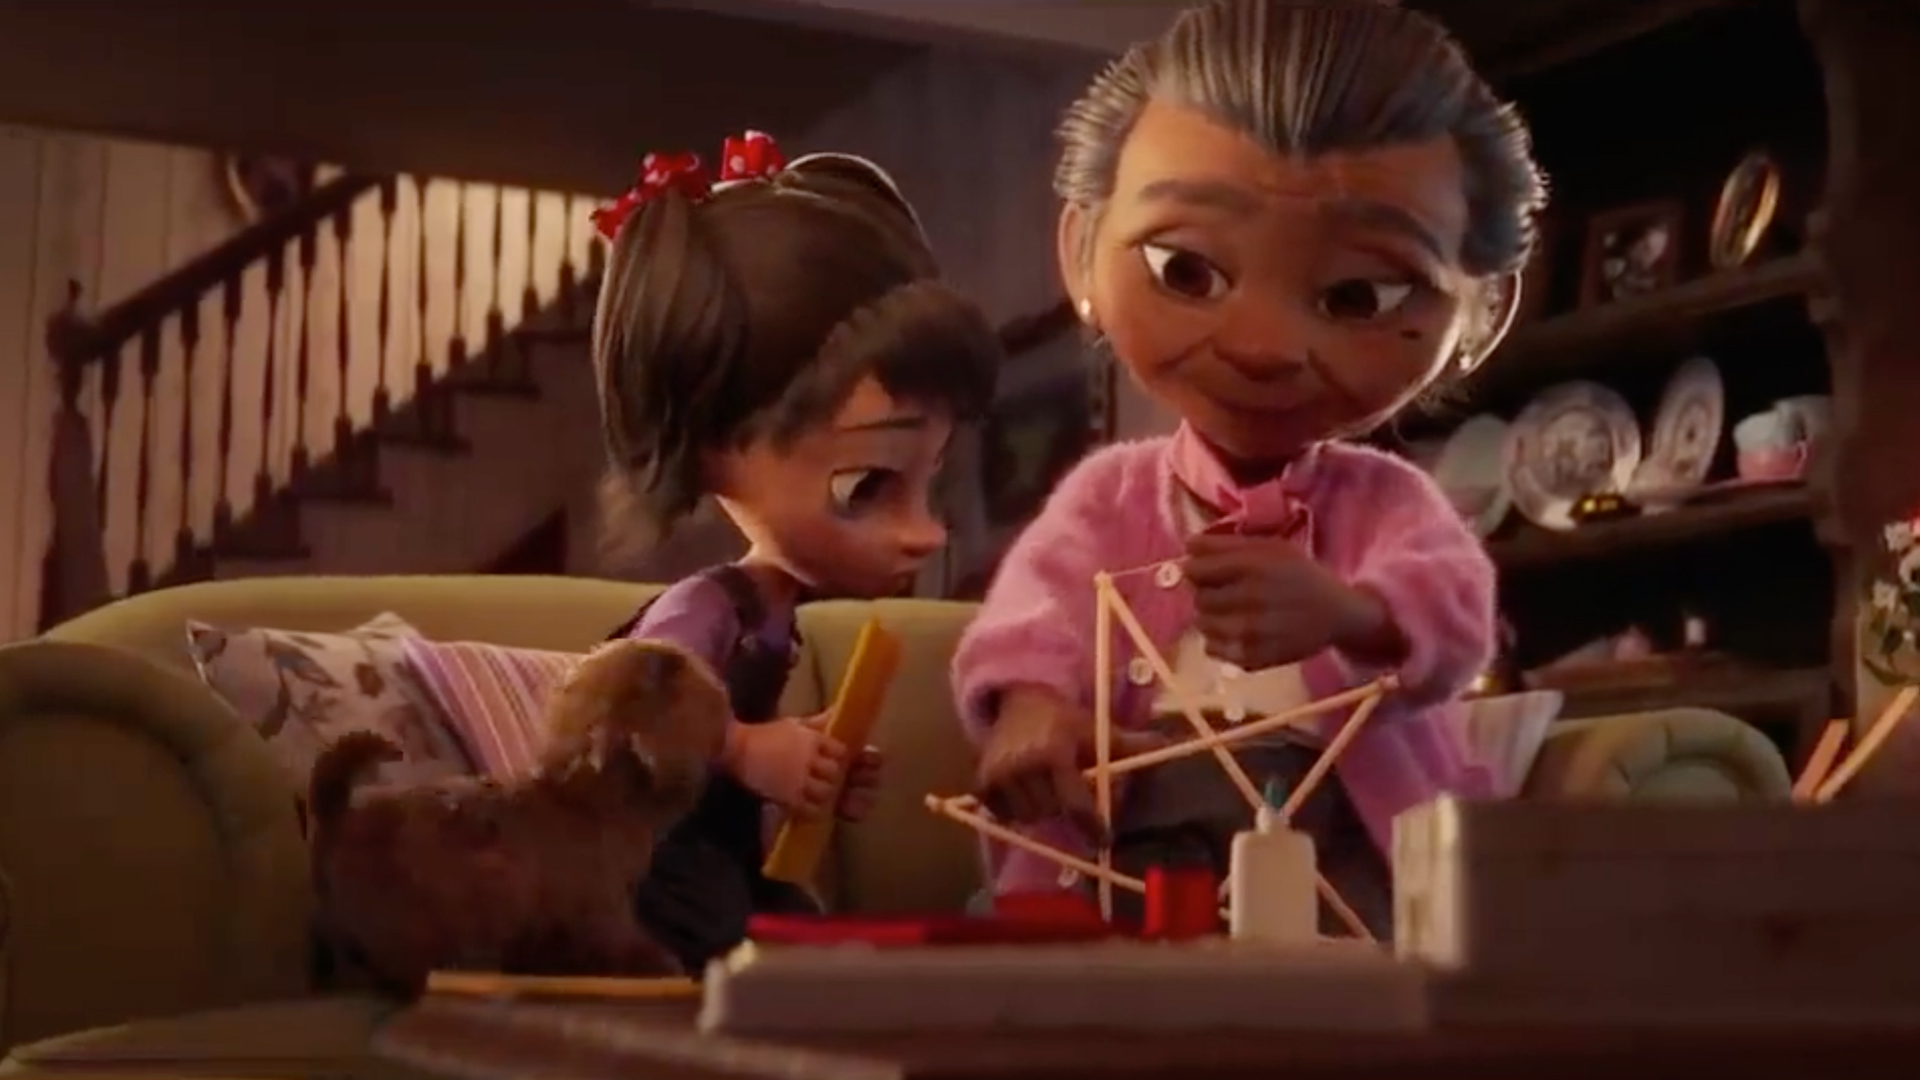 a holiday spot from Disney about Filipino grandma and granddaughter